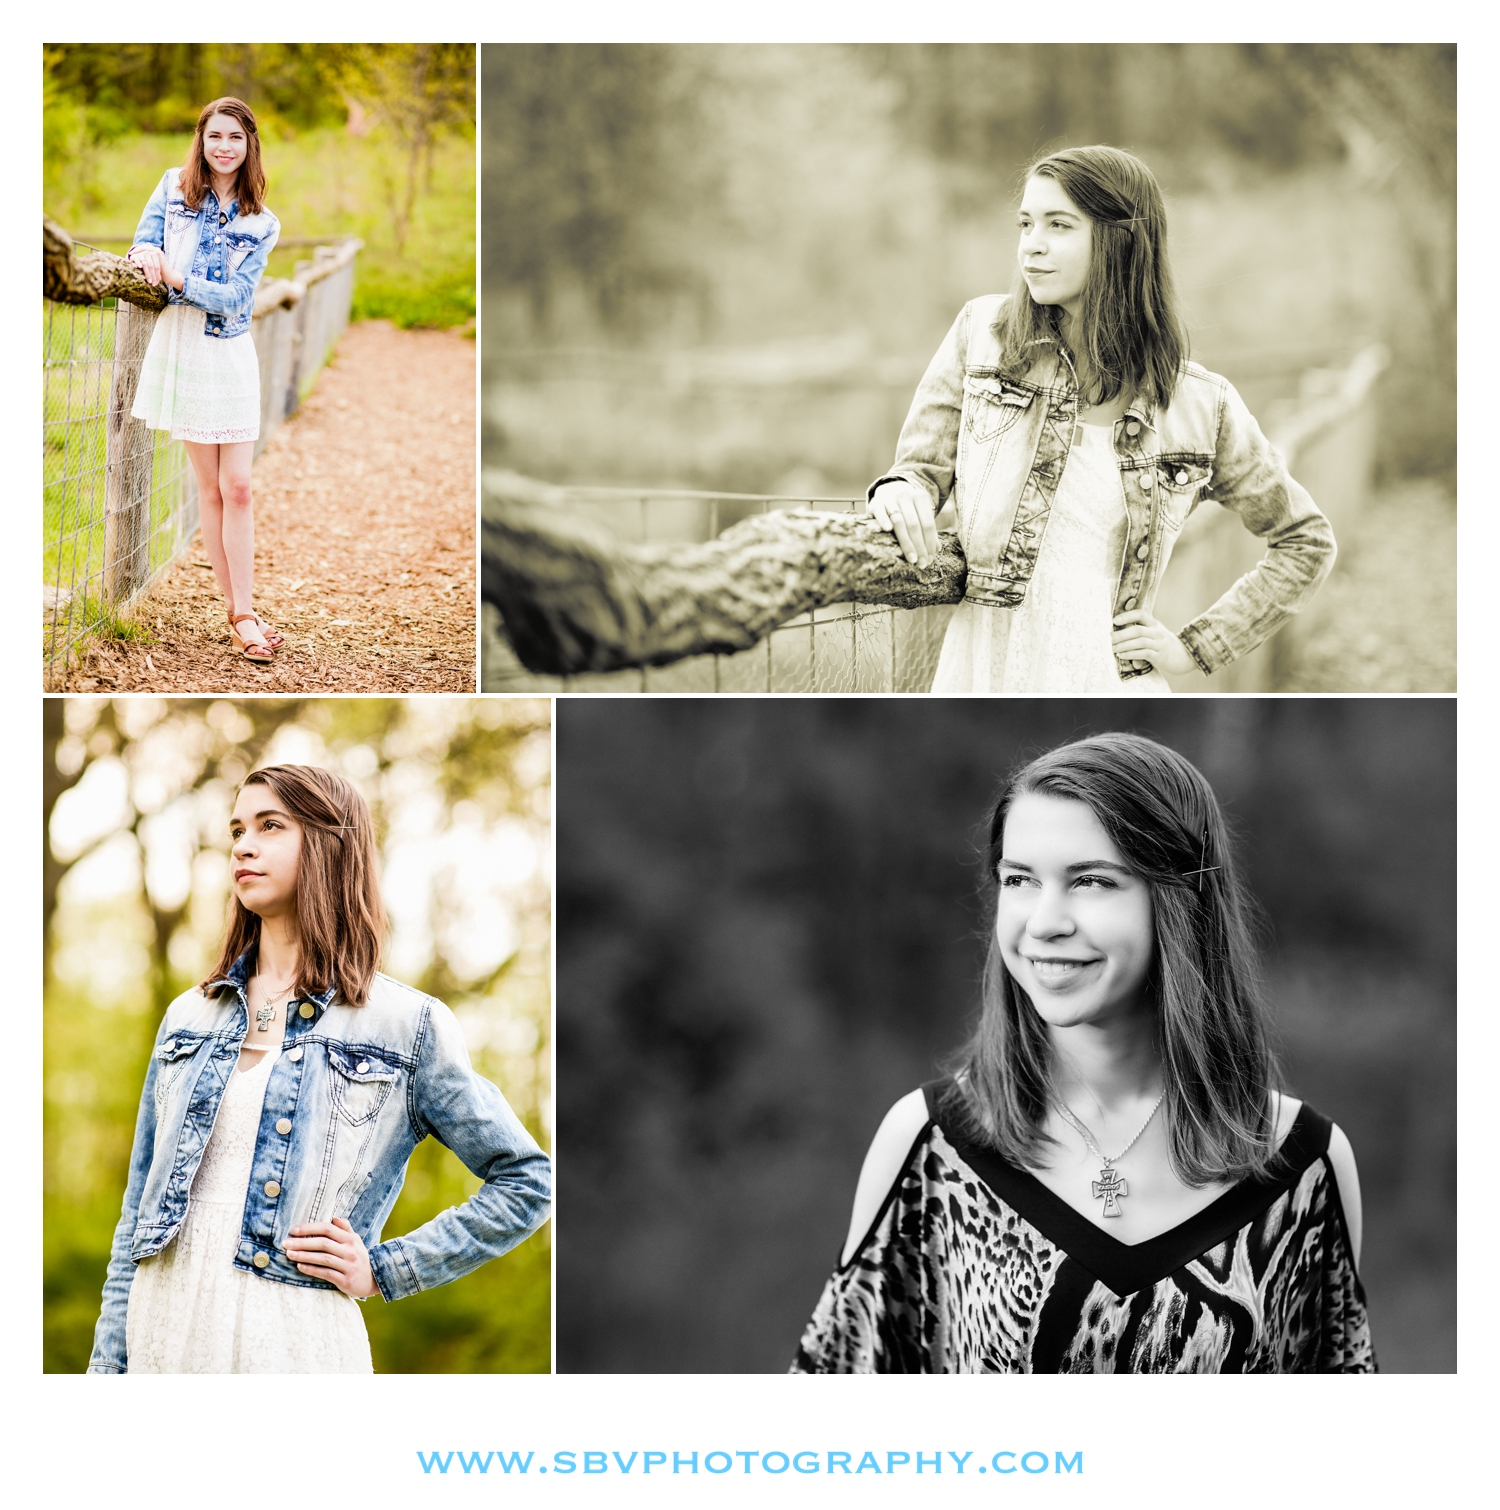 Senior photos at Taltree Arboretum.